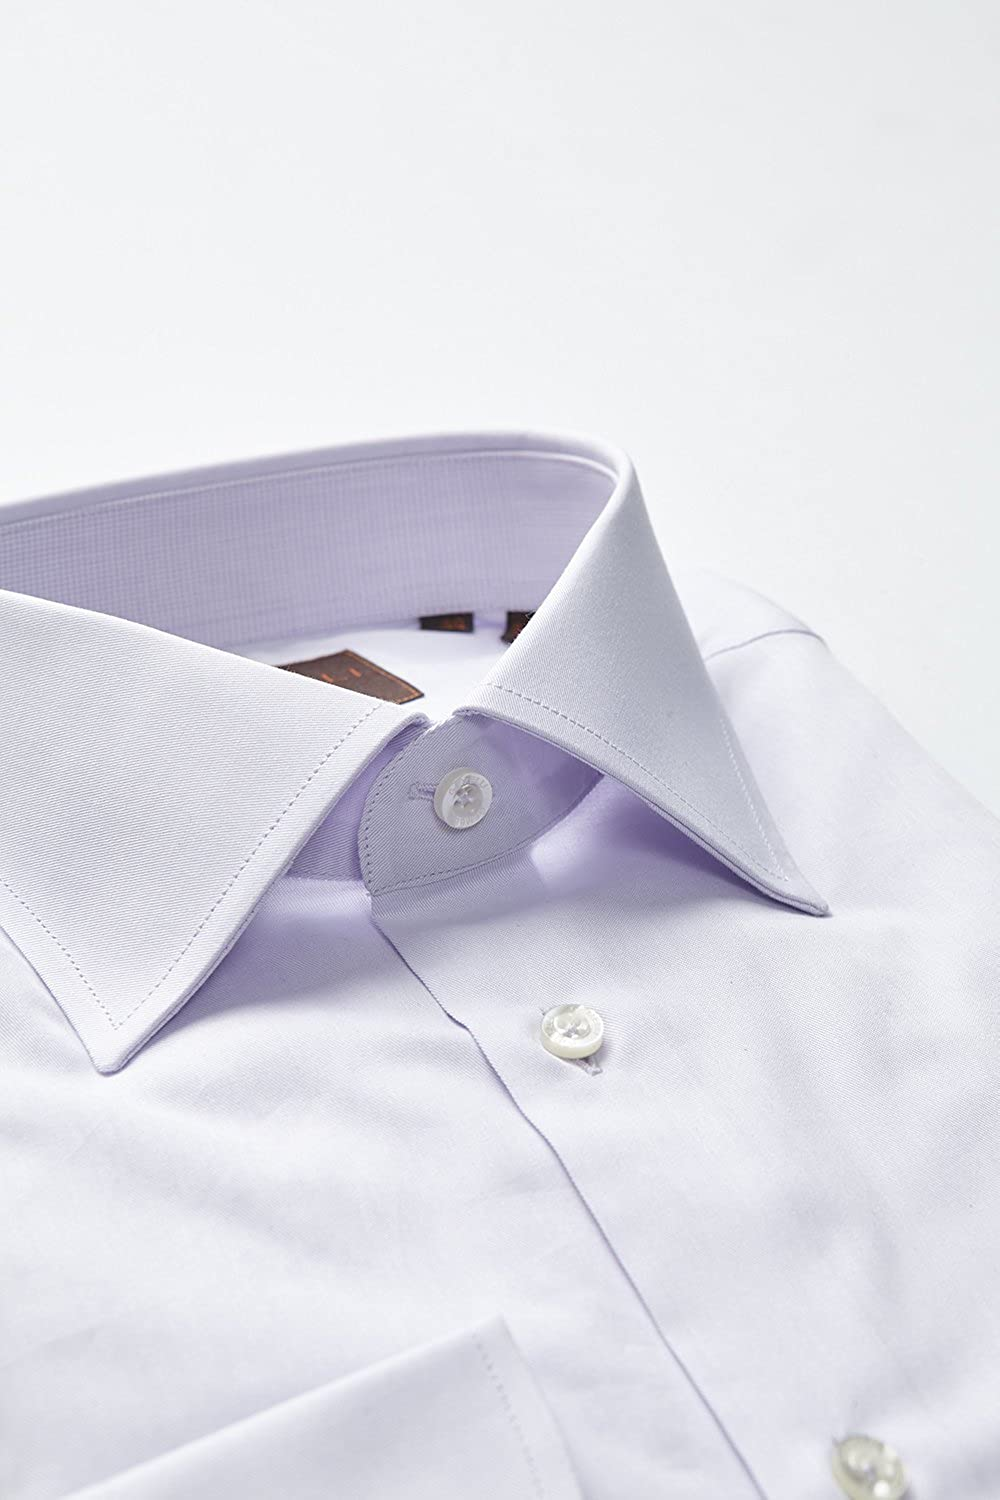 Long Sleeve Lavender Solid Shirt Mens Dress Shirt Slim Fit Made in Italy 100/% Cotton